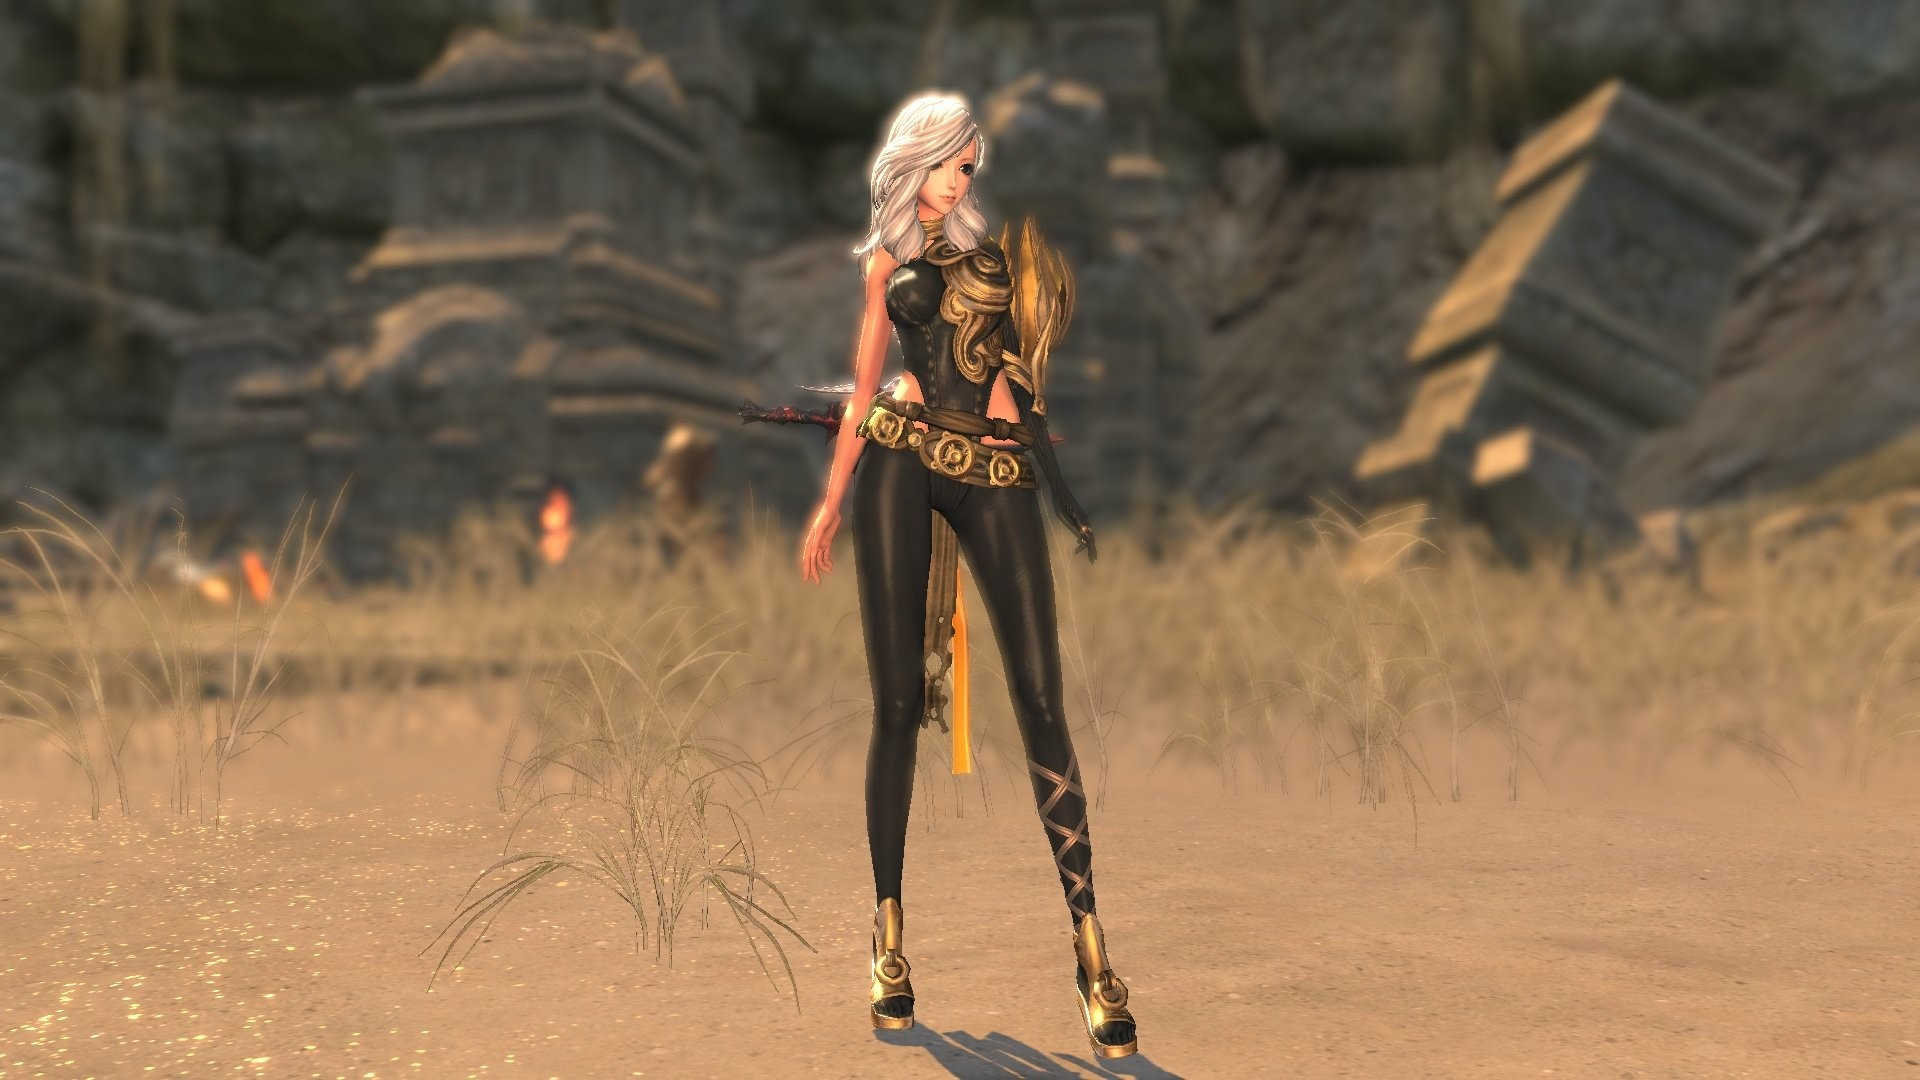 BLADE And SOUL asian martial arts action fighting 1blades online mmo rpg  Beulleideu aen anime fantasy perfect wallpaper | | 679652 |  WallpaperUP